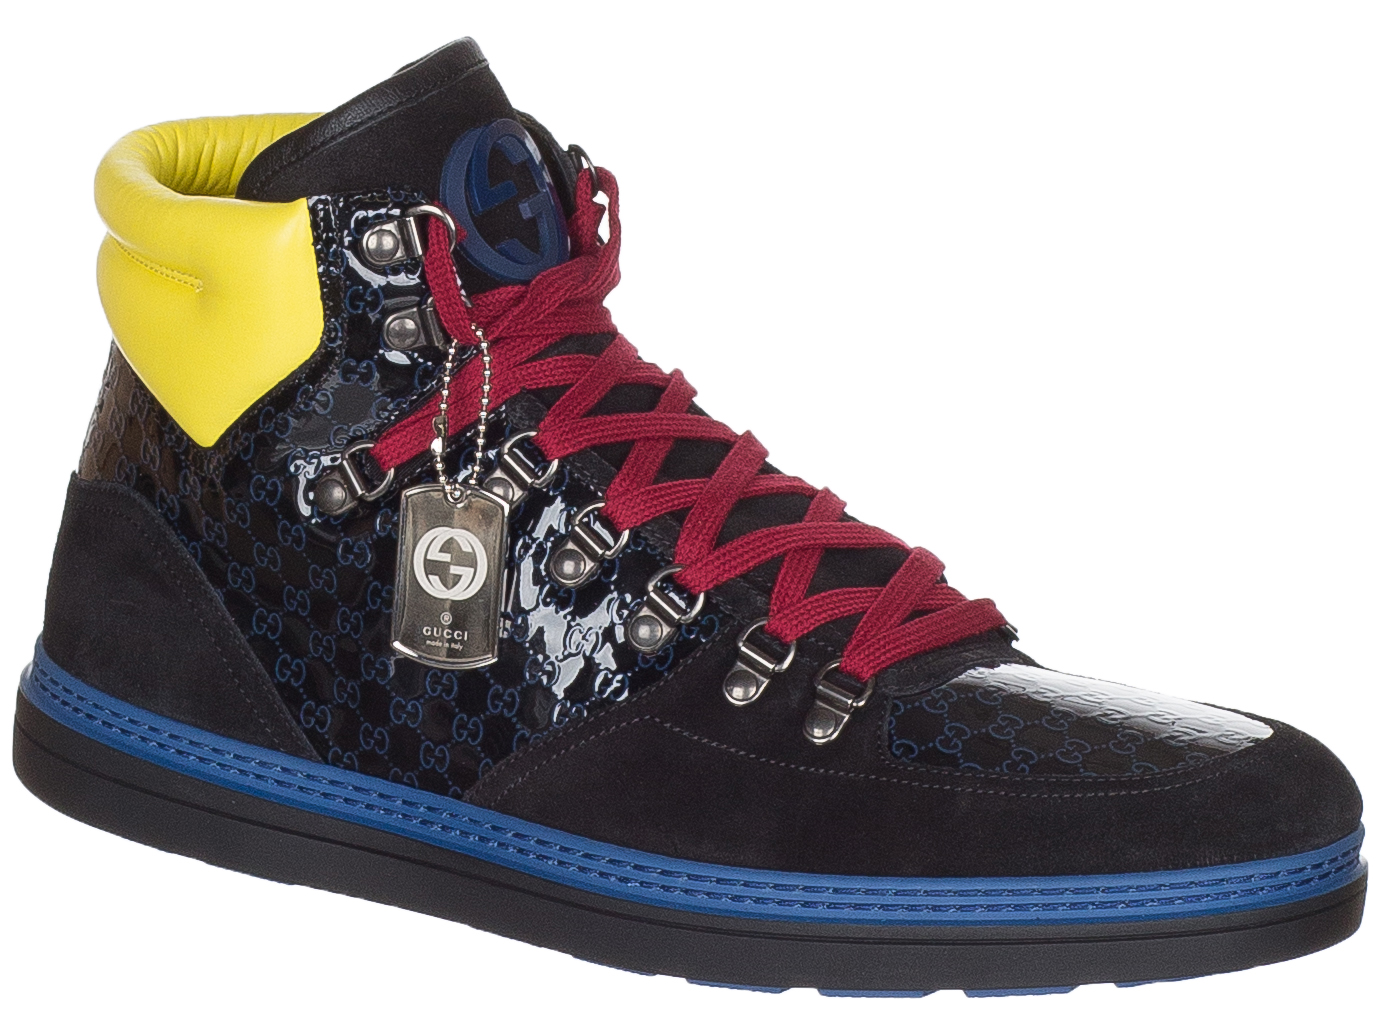 2989f865588 Gucci Men s Limited Edition GG Guccissima Leather High Top Sneakers Shoes